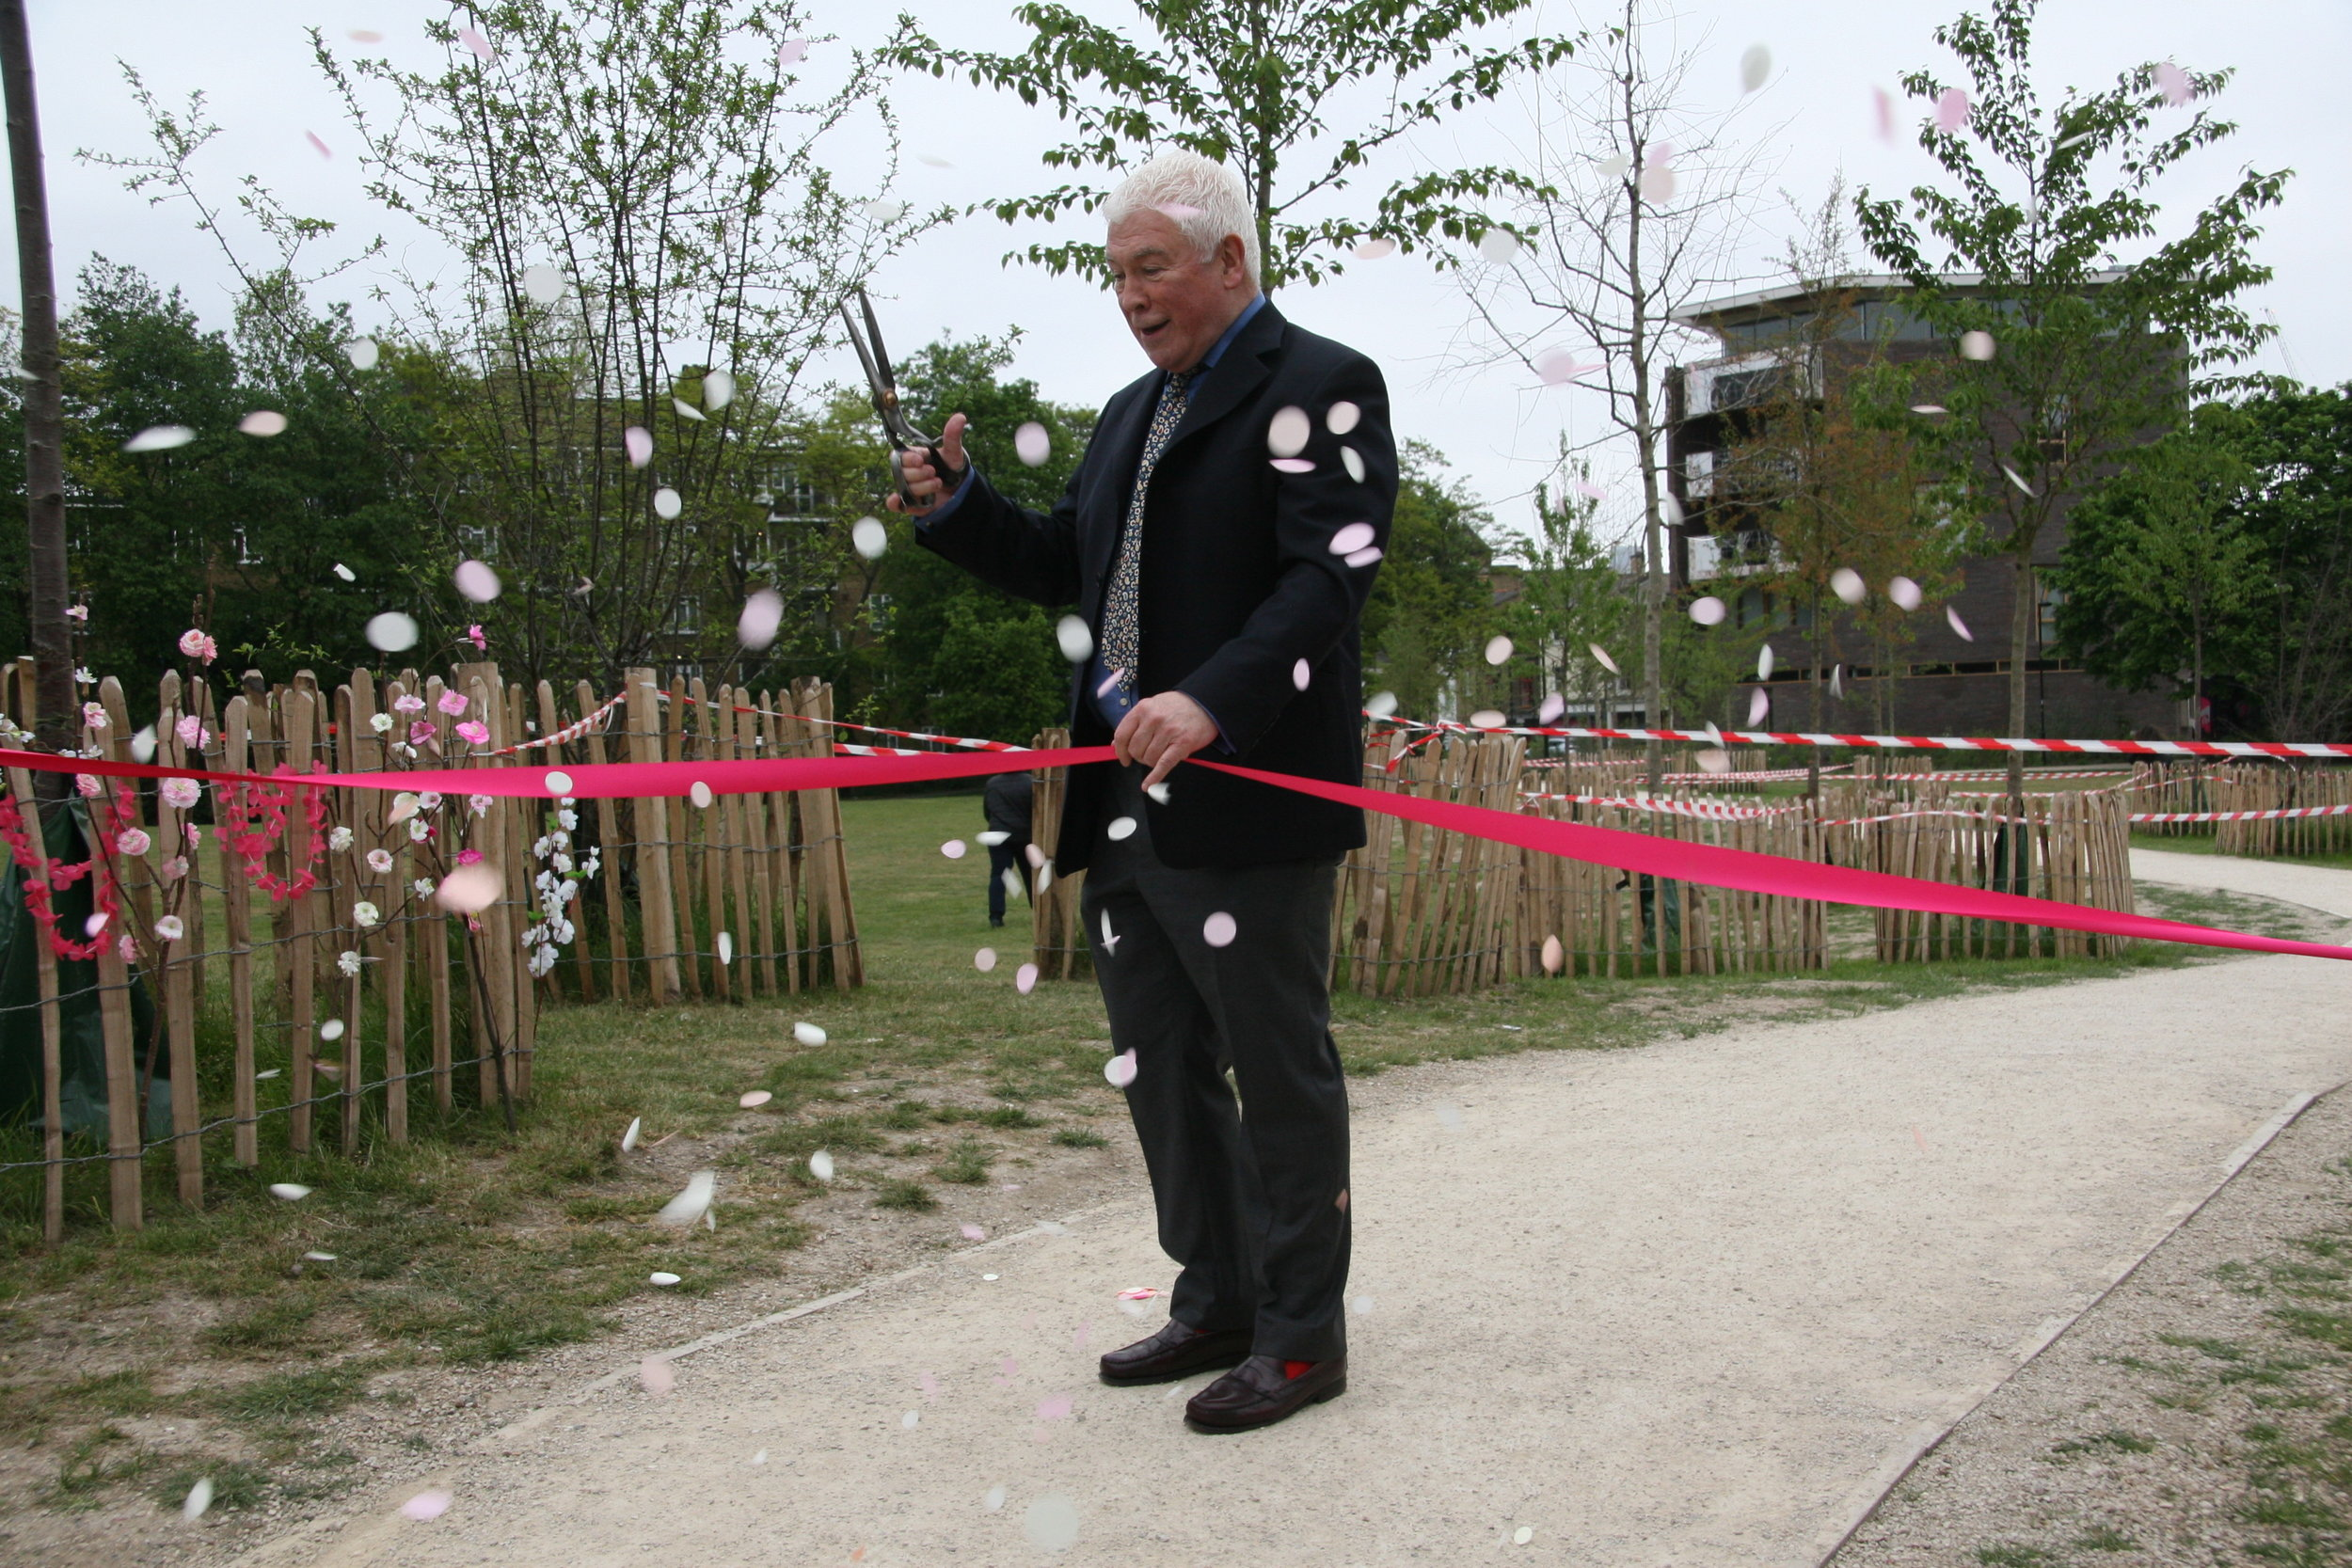 Sean Rafferty prefers to cut the ribbon